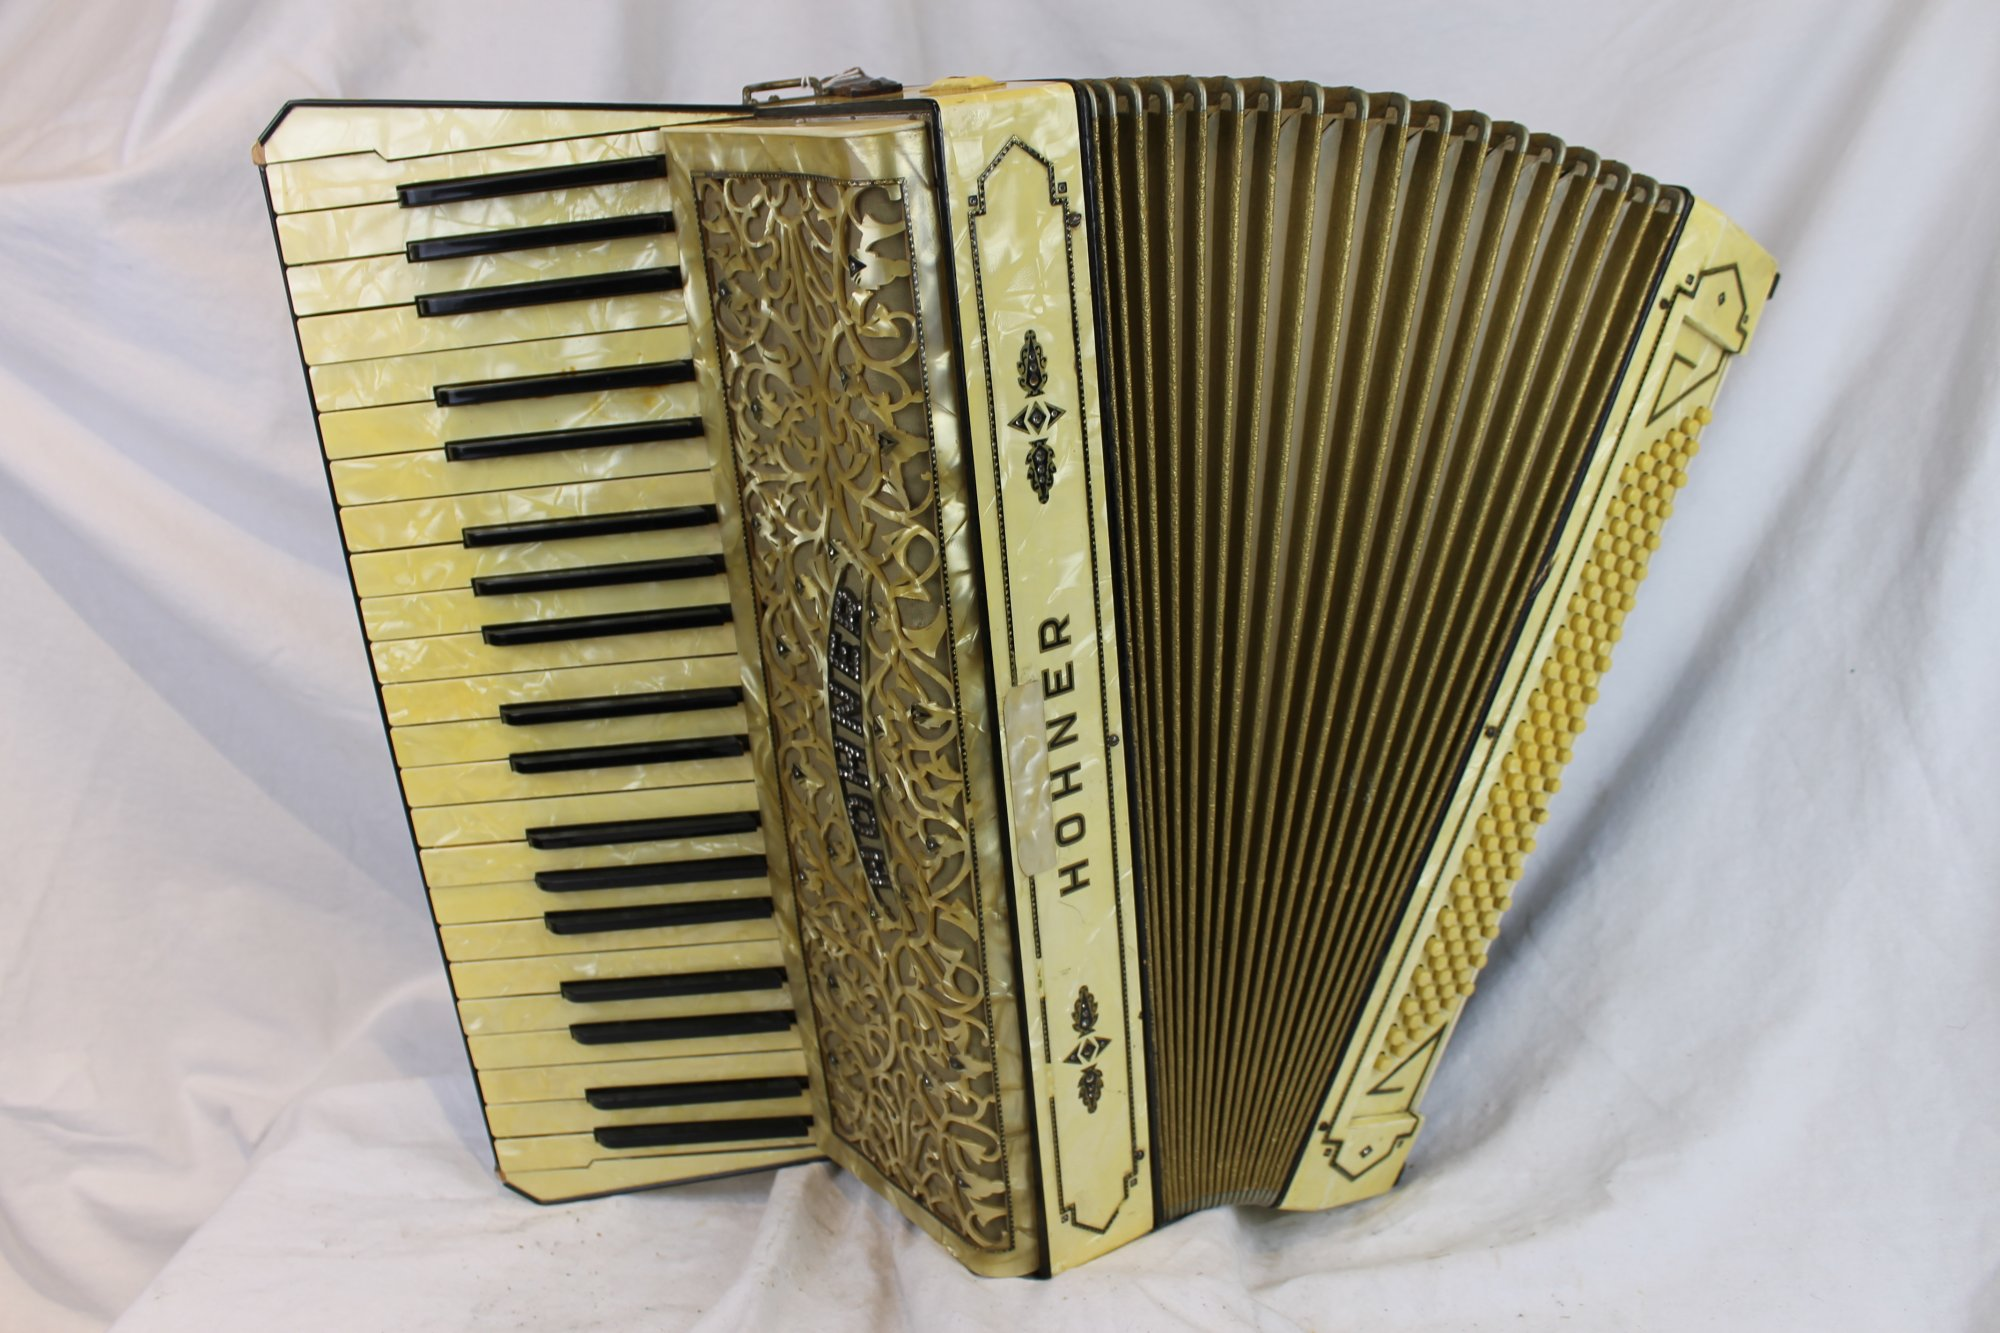 6140 - Buttercream Hohner Piano Accordion LMMM 41 120